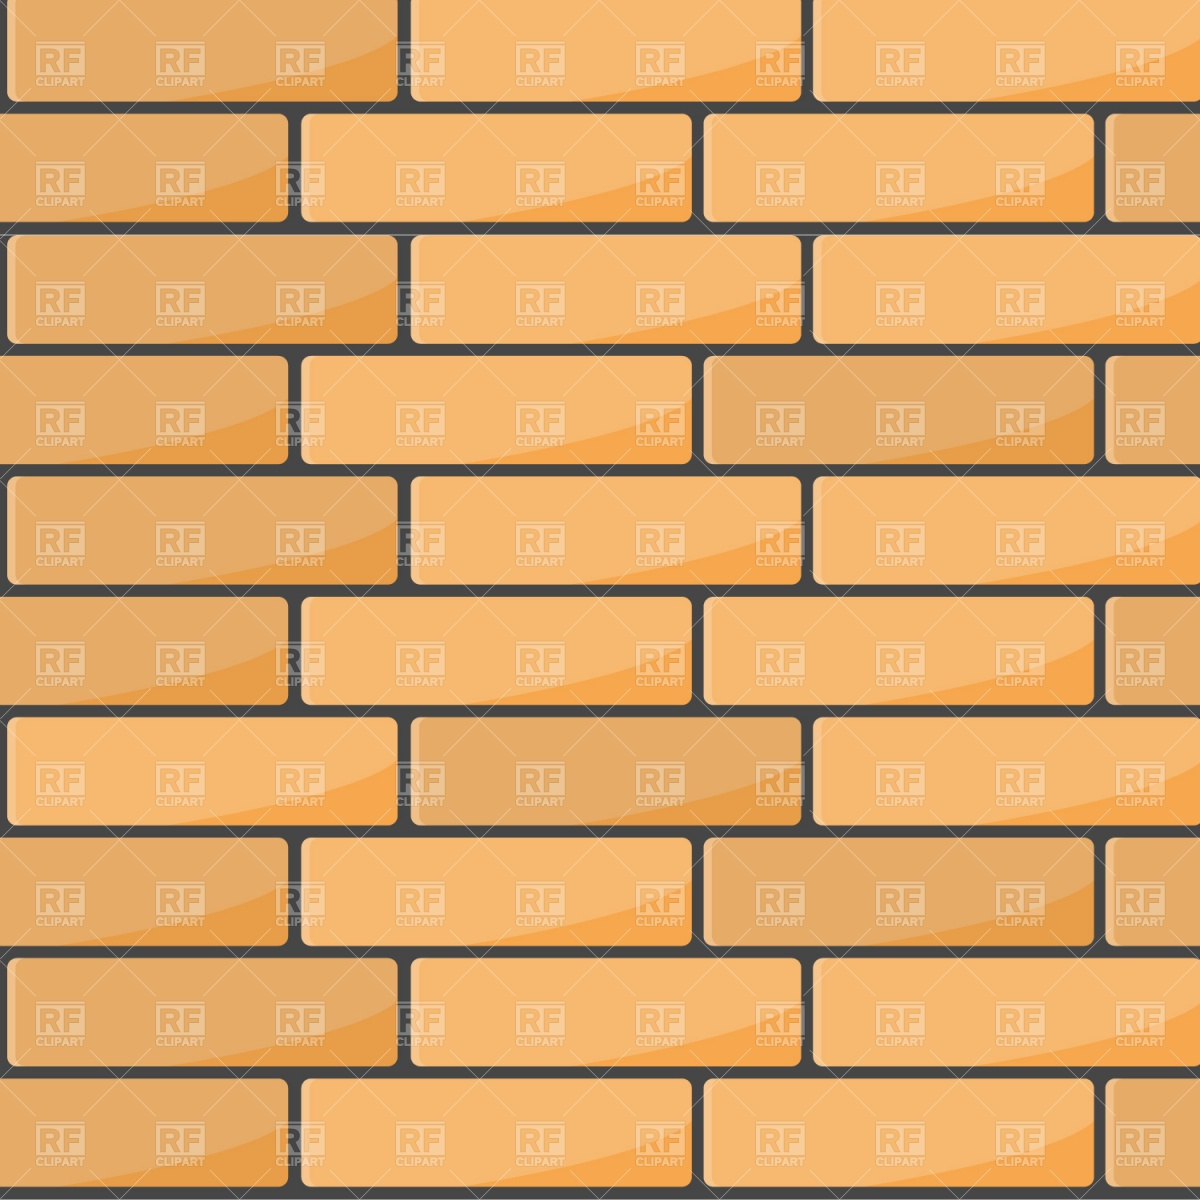 Brick Wall Stock Vectors Clipart and Illustrations